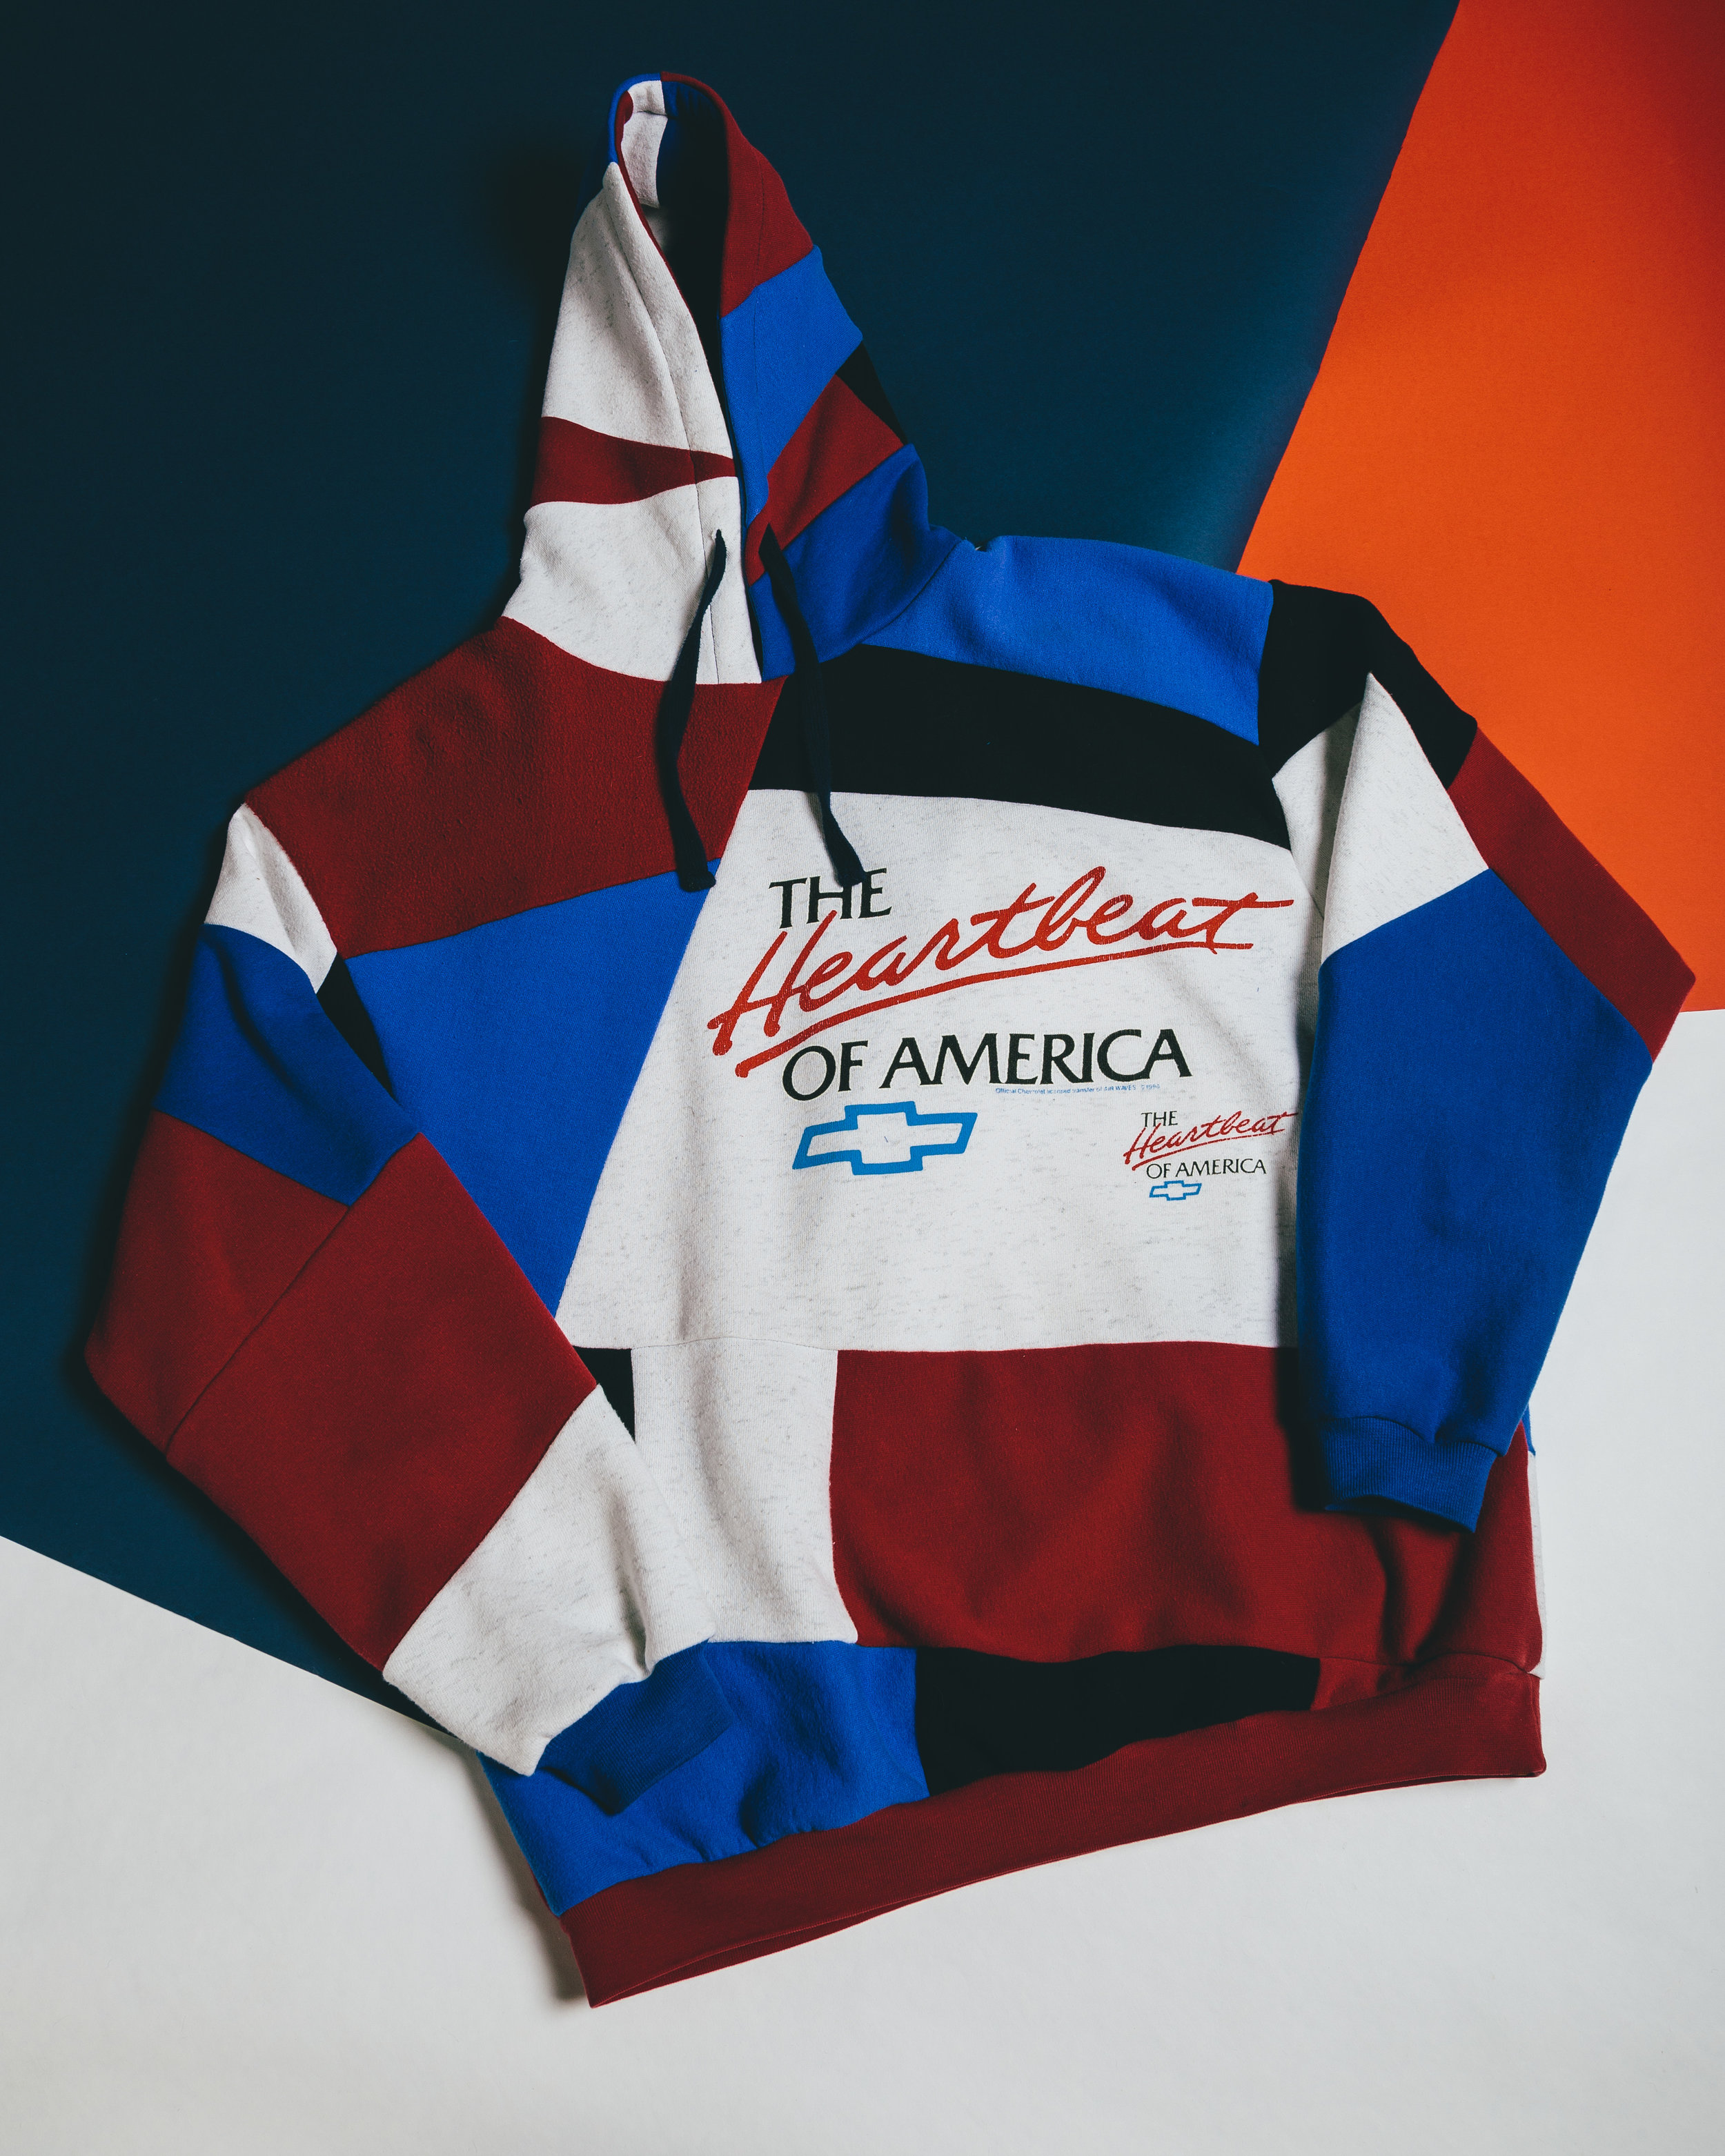 Heartbeat of America - Inspired by old school box Chevys and the way that classic cars are timeless pieces of art